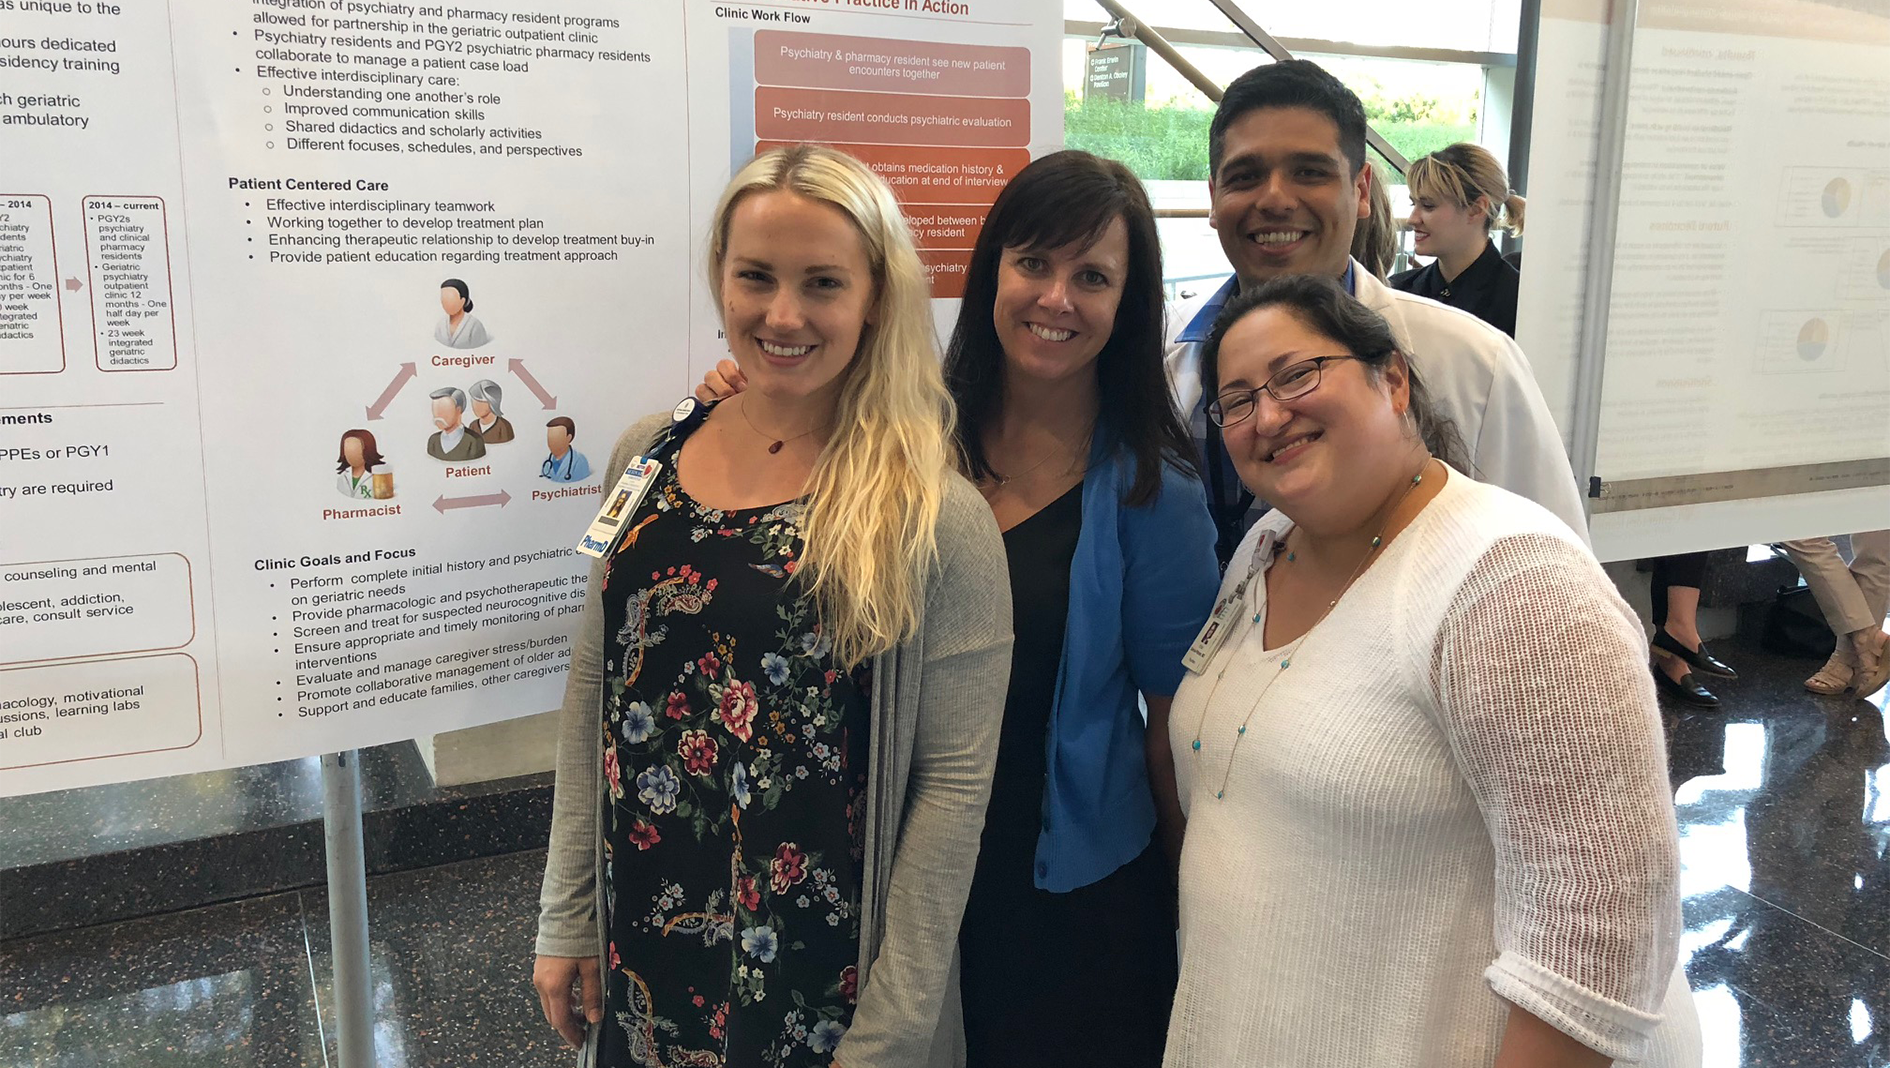 Members of the Geriatric Psychiatry Fellowship at Dell Medical School together in front of a presentation poster.